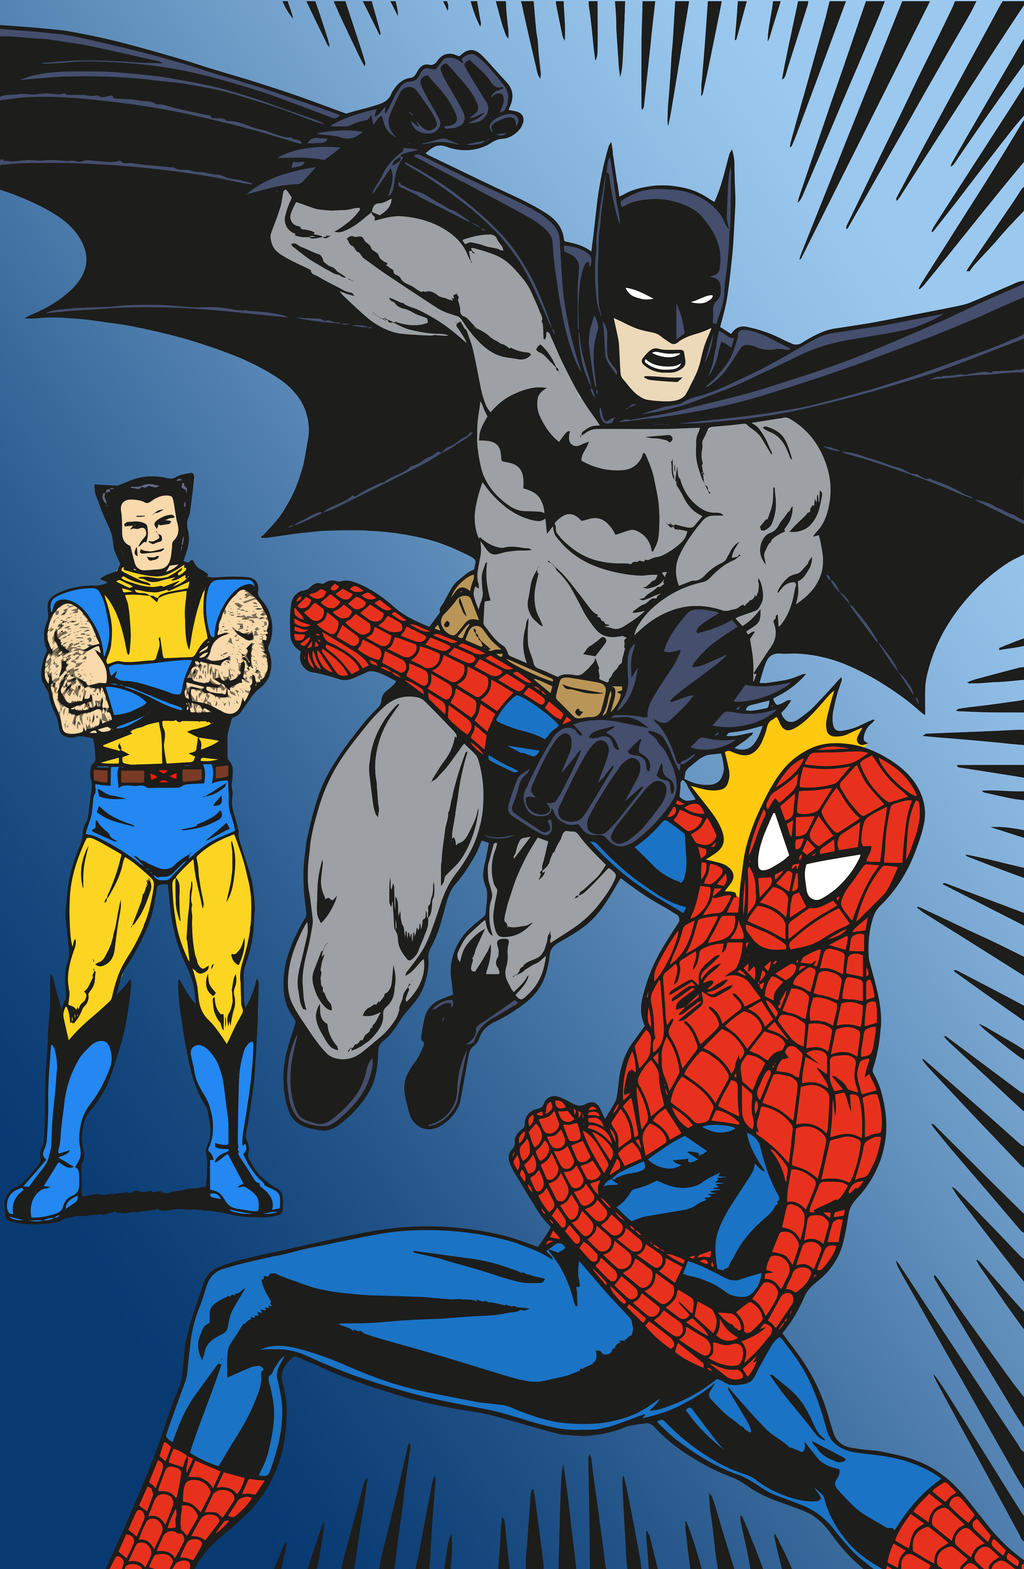 compare and contrast batman spiderman Batman vs superman comparison dc comics superheroes batman and superman were both created in the 1930s while batman has no superpowers  compare anything.